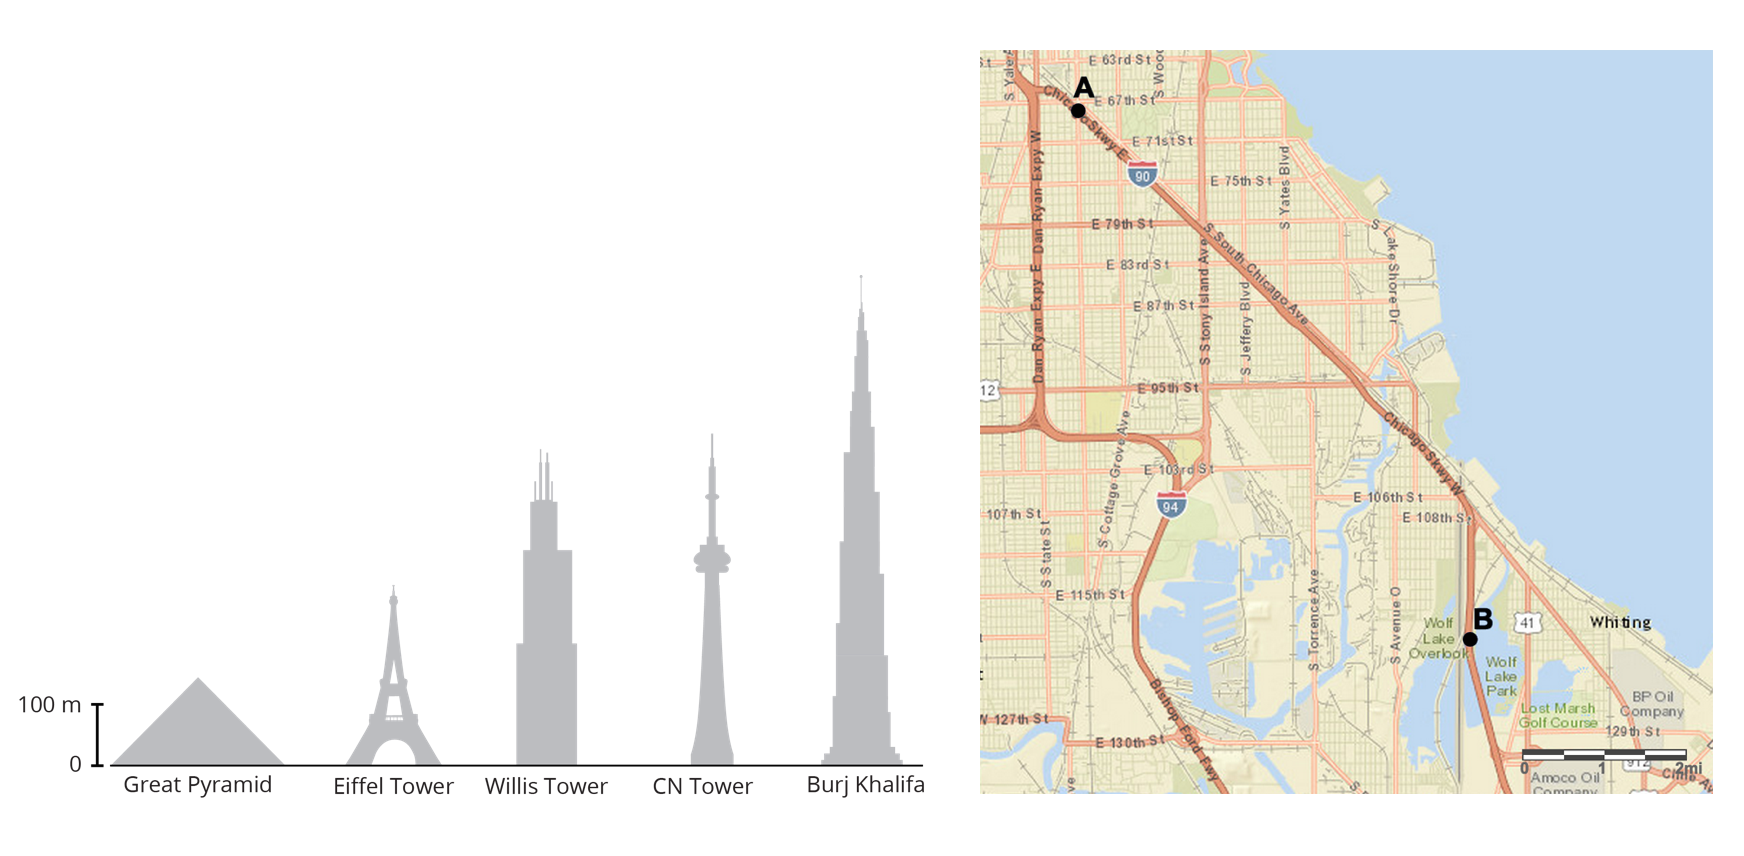 Two images of scale drawings. The first image is of 5 tall buildings and the second image is of a map. In the image of the buildings, each building is increasing in heightand are labeled from left to right, Great Pyramid, Eiffel Tower, Willis Tower, CN Tower, and Burj Khalifa. The left side of the image shows a scale labeled 0 meters and the top labeled 1 unit equals 100 meters. In the image of the map, there is a scale at the bottom right labeled 1 unit equals 2 miles. The map also shows two points labeled A and B with A near the top left of the map and B near the bottom right of the map.